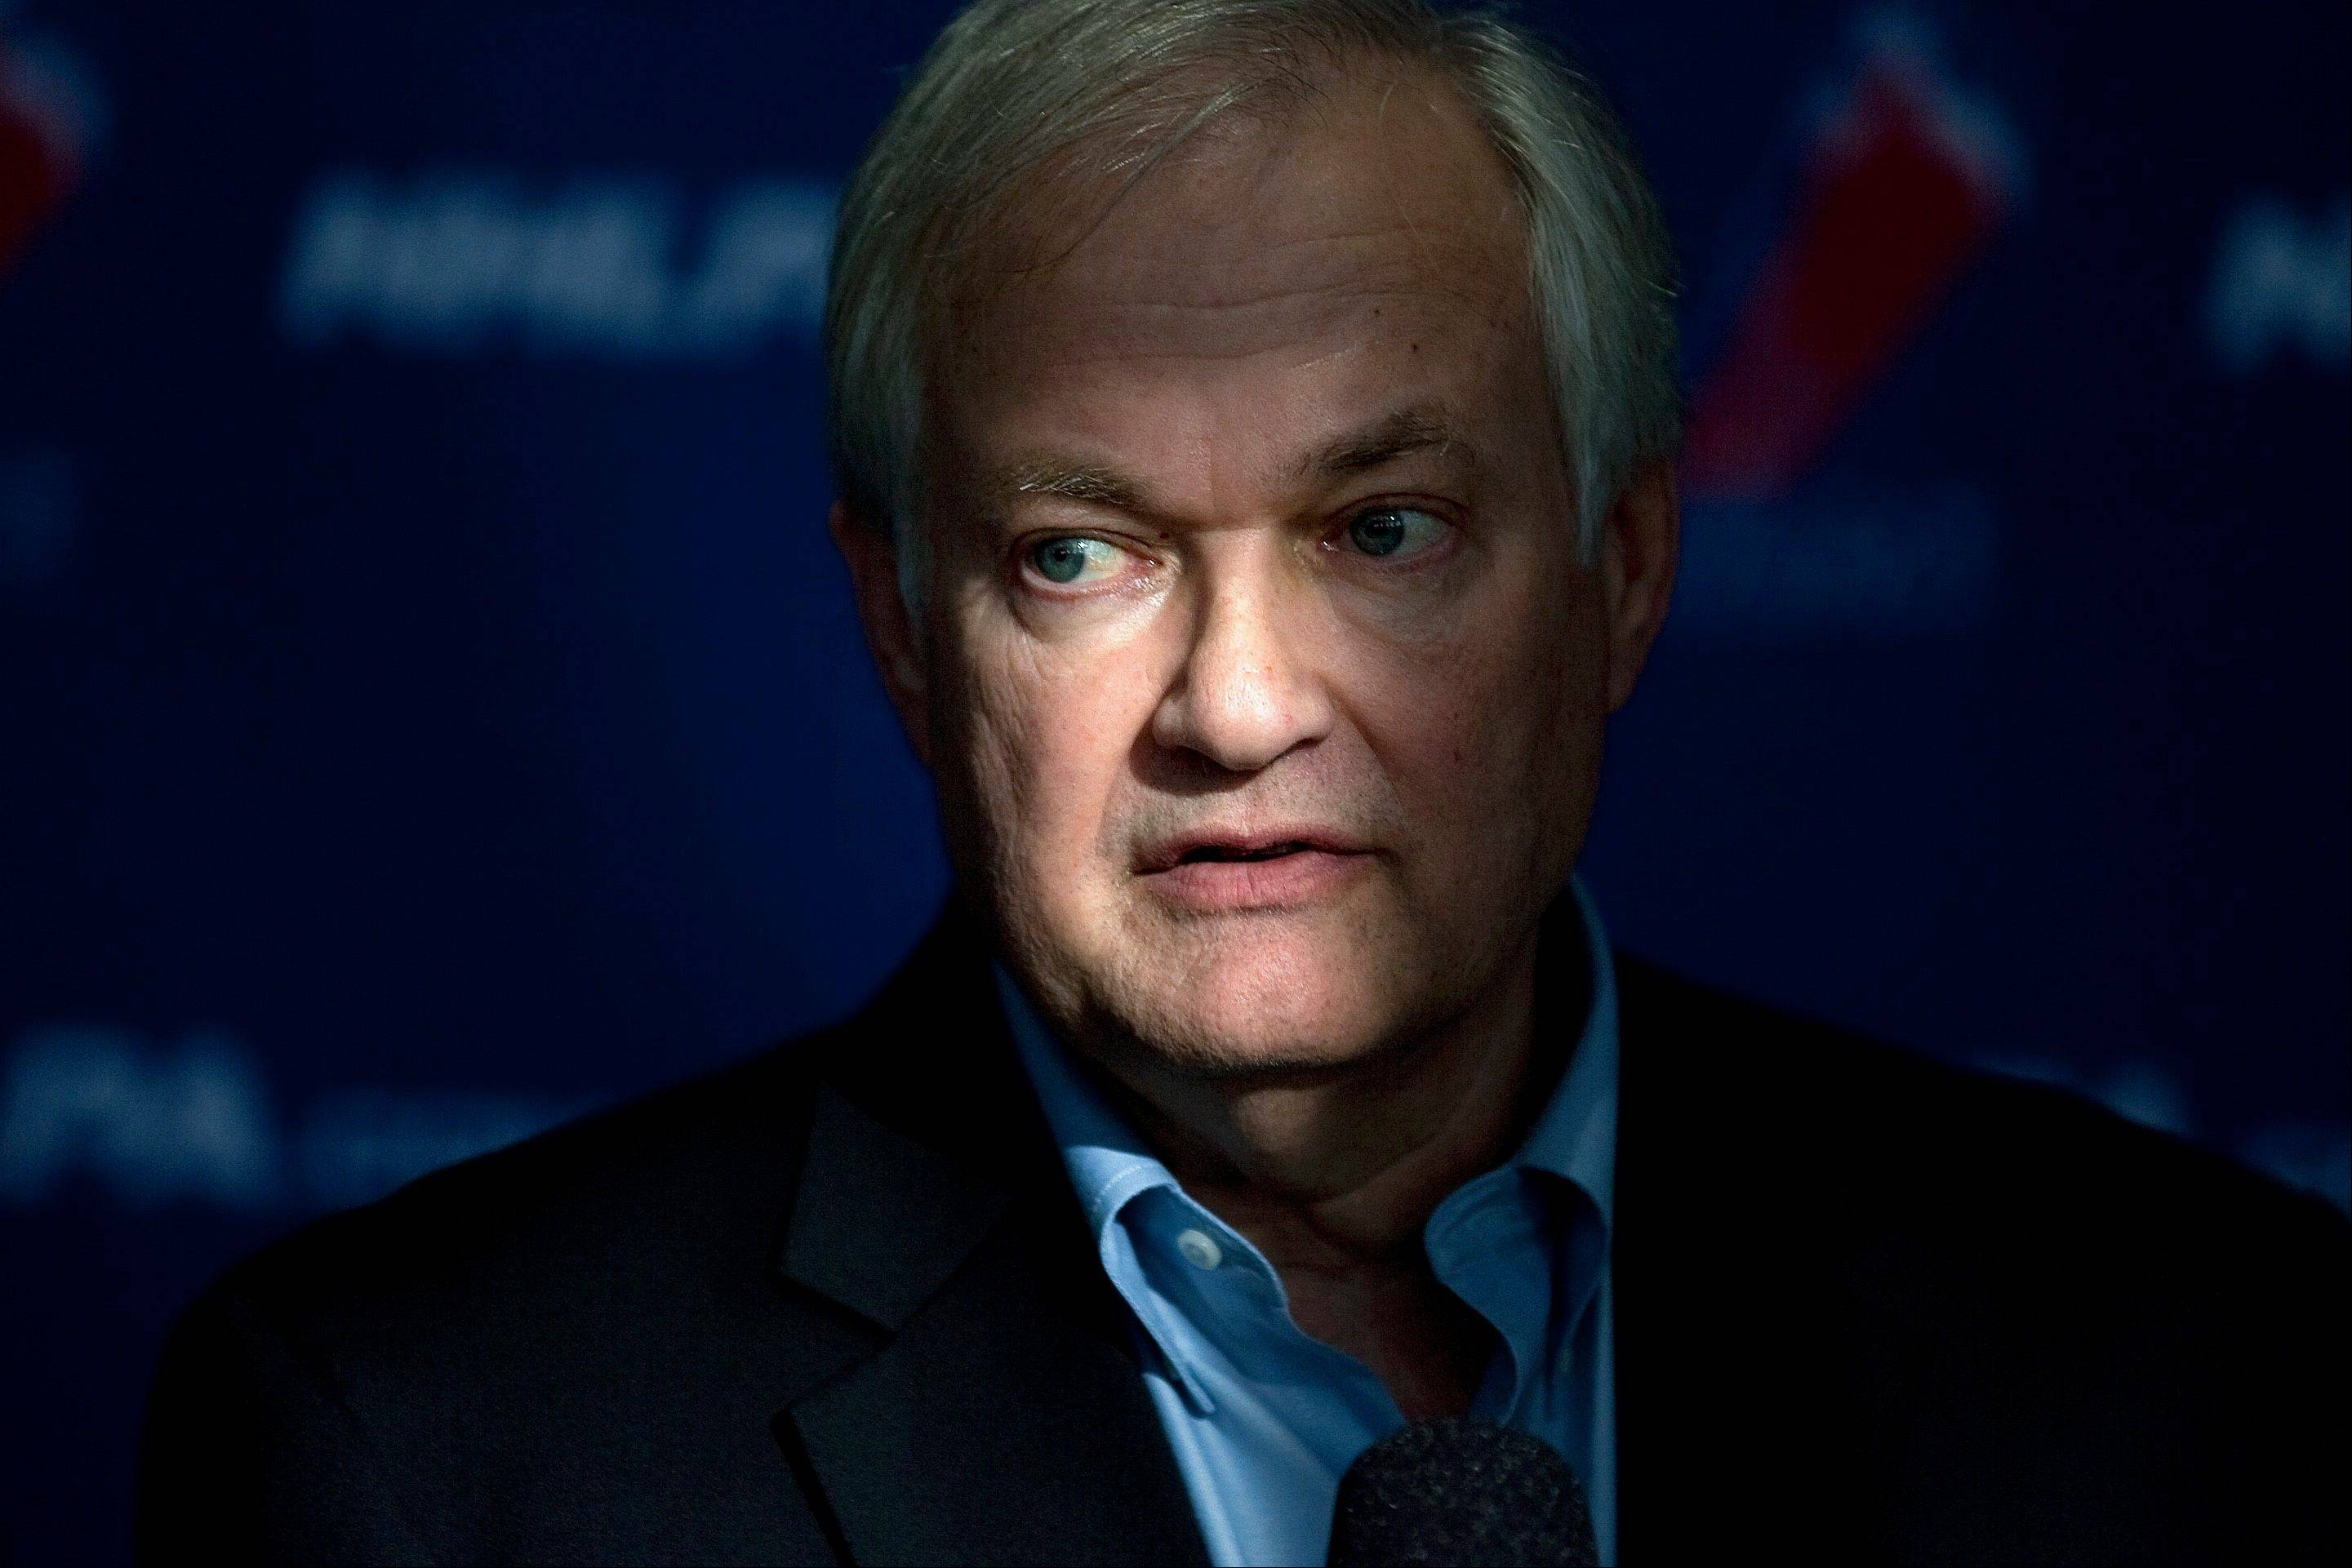 NHL players' association head Donald Fehr speaks to reporters following collective bargaining talks in Toronto on Tuesday, Oct. 16, 2012.